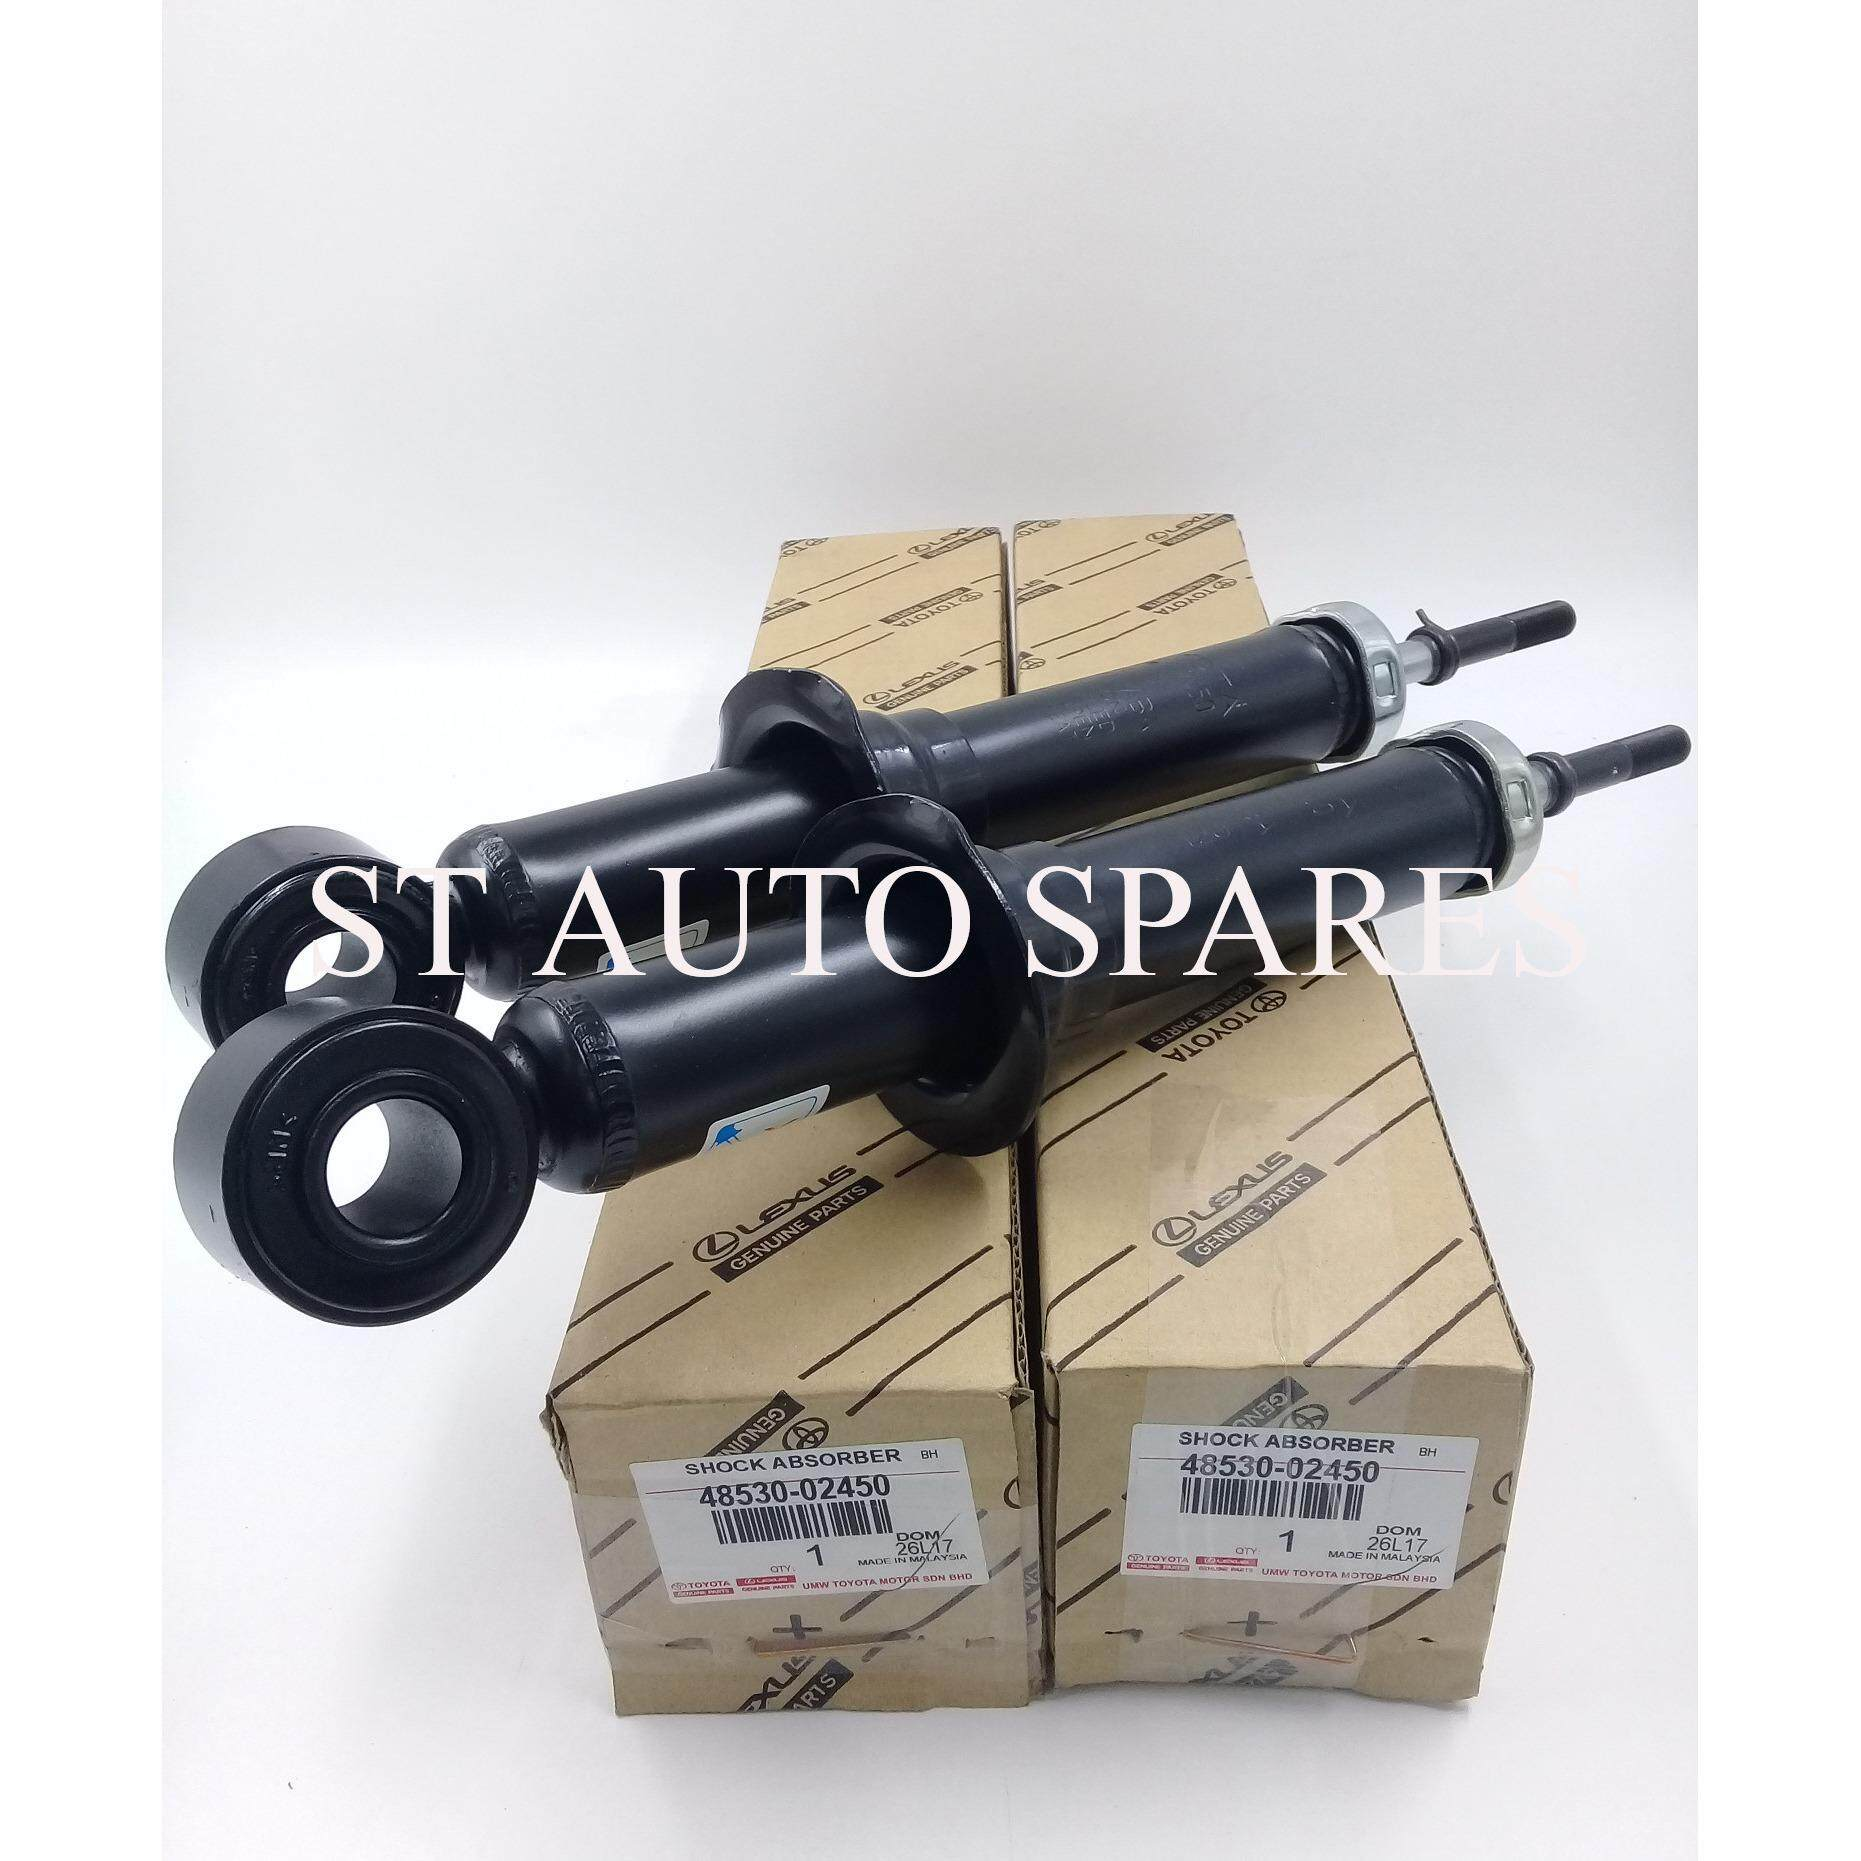 Toyota Auto Parts Spares Price In Malaysia Best 1997 Camry Fuel Filter Location Altis Zze121 Zze122 2001 2008 Rear Absorber Set Left Right 48530 02450